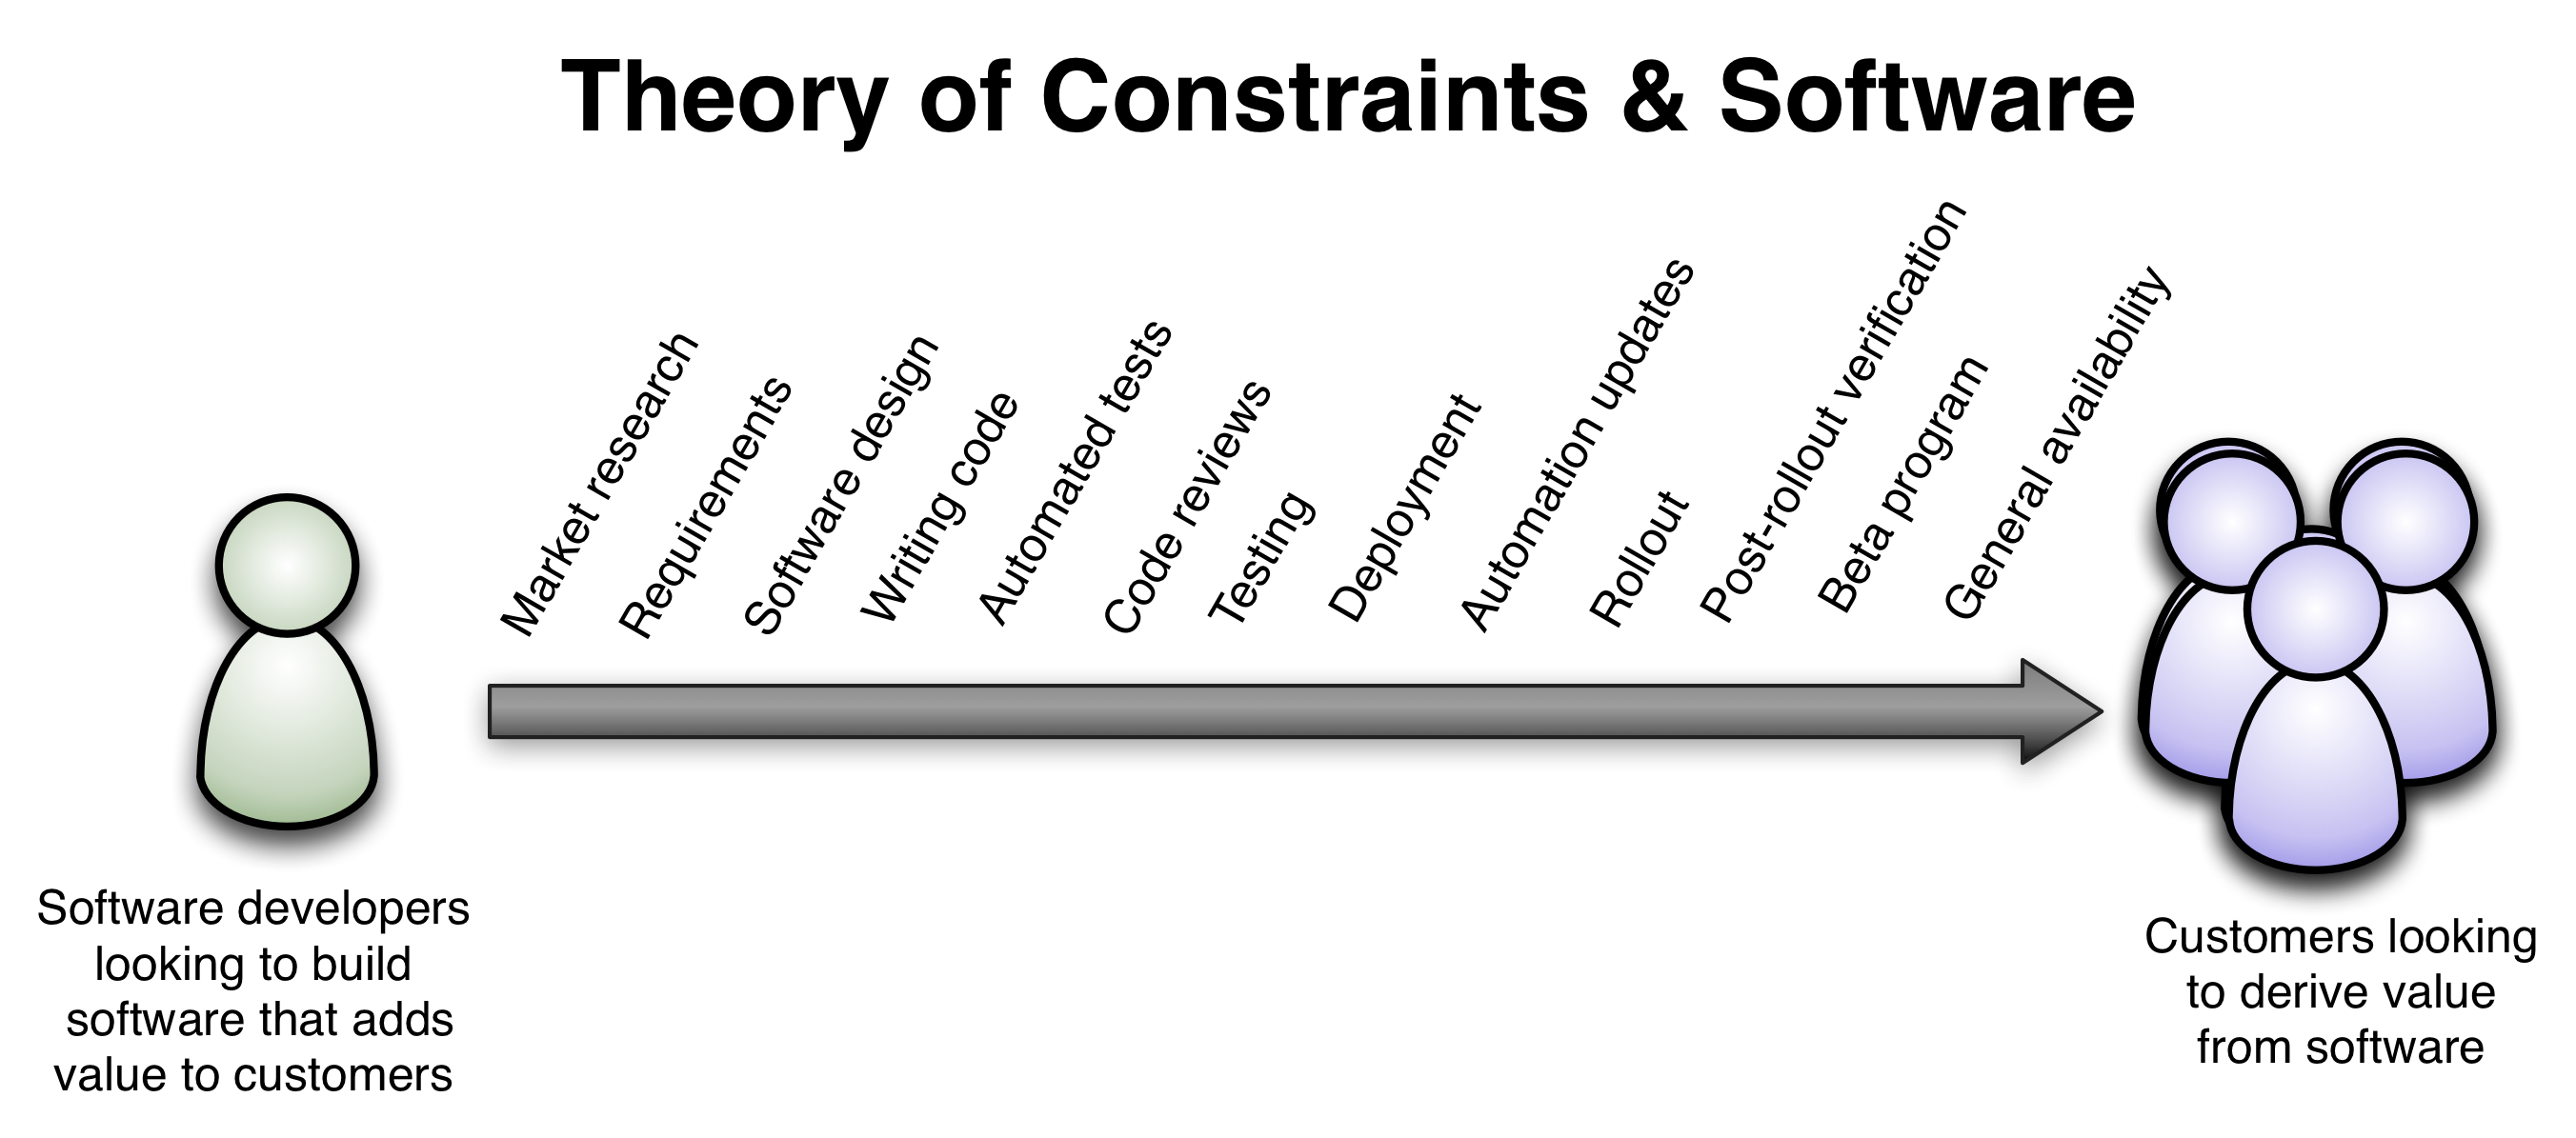 Theory of Constraints & Software